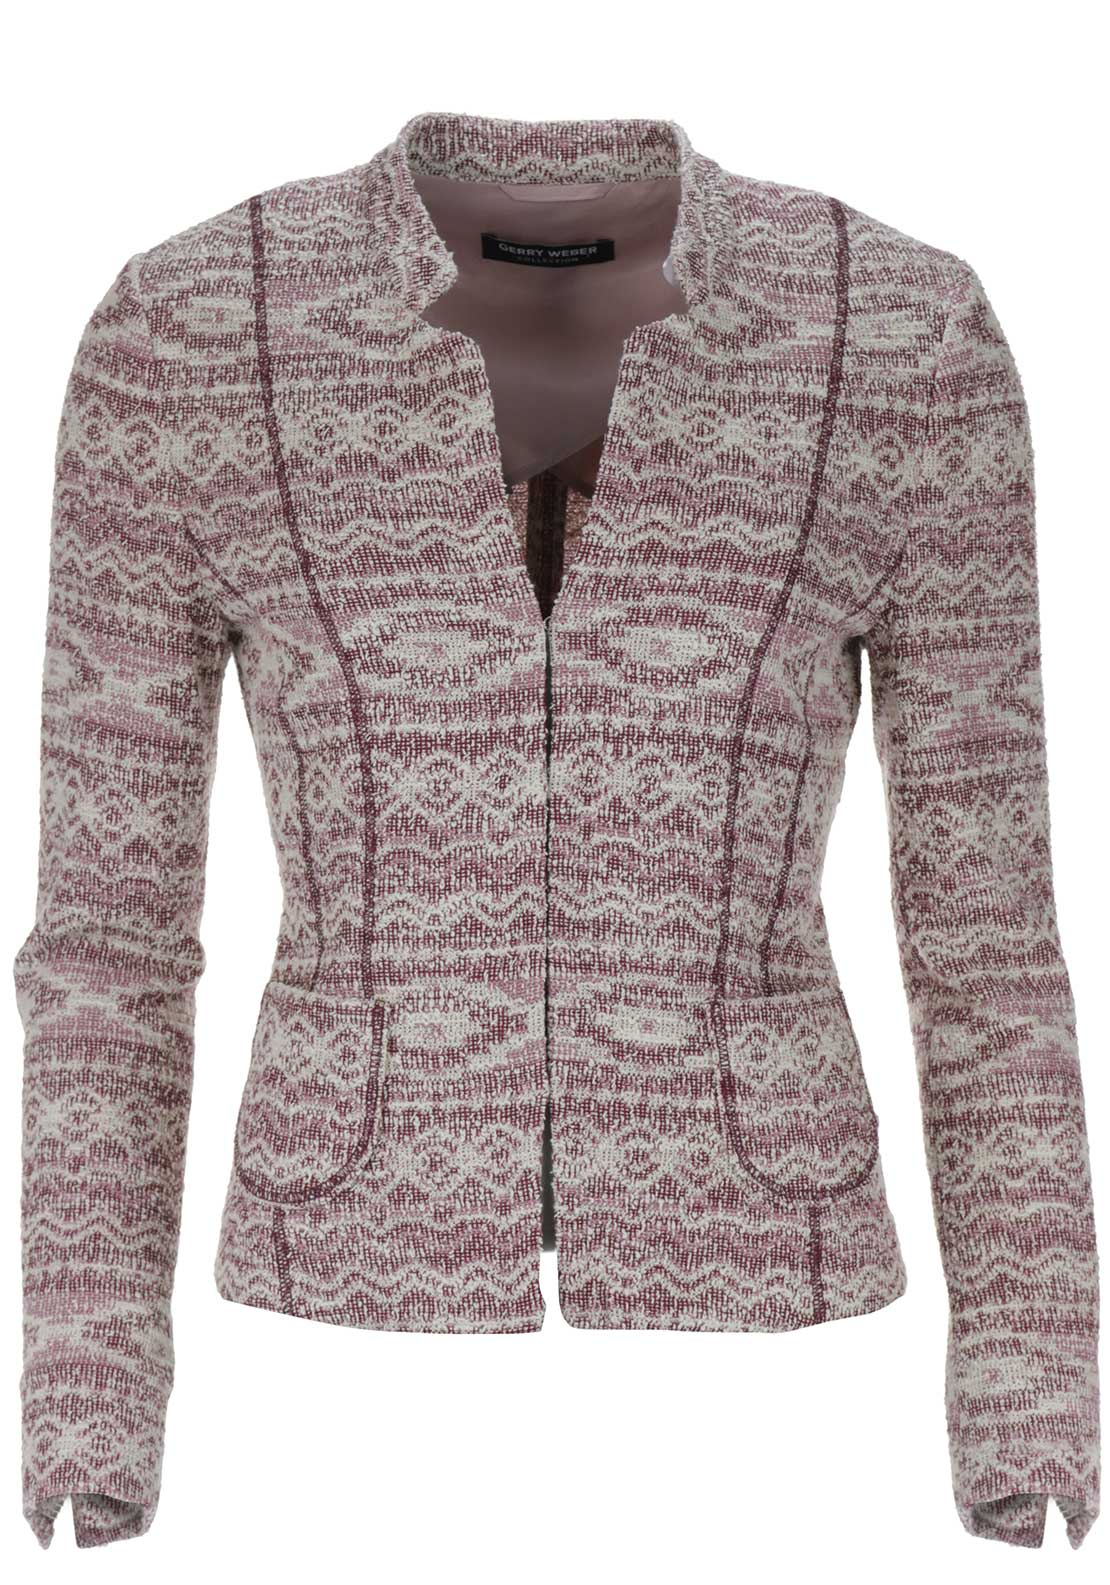 Gerry Weber Cotton Rich Boucle Jacket, Wine Multi